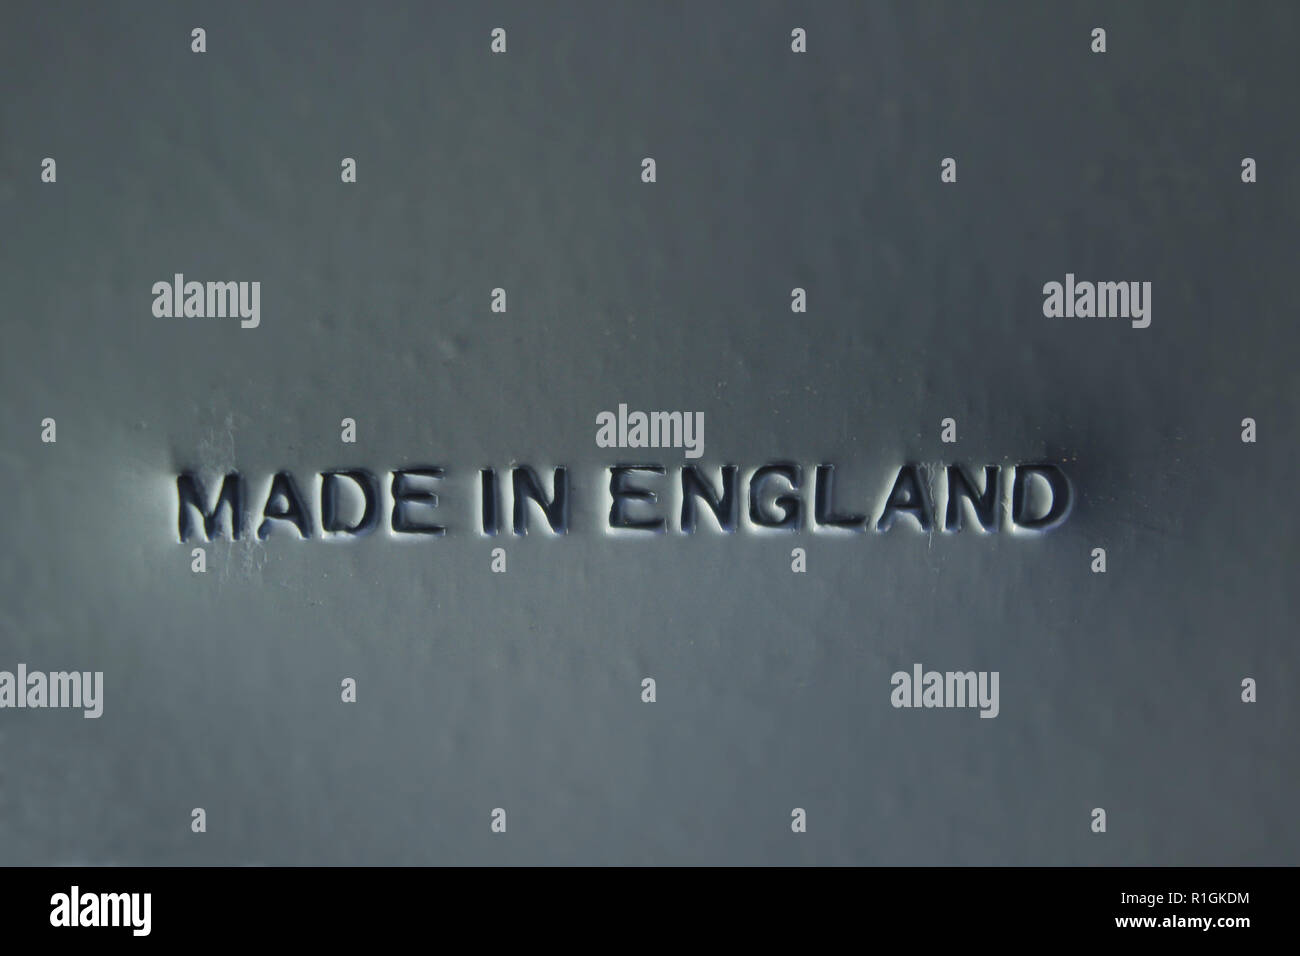 Made in England engraved in metal sheet - Stock Image